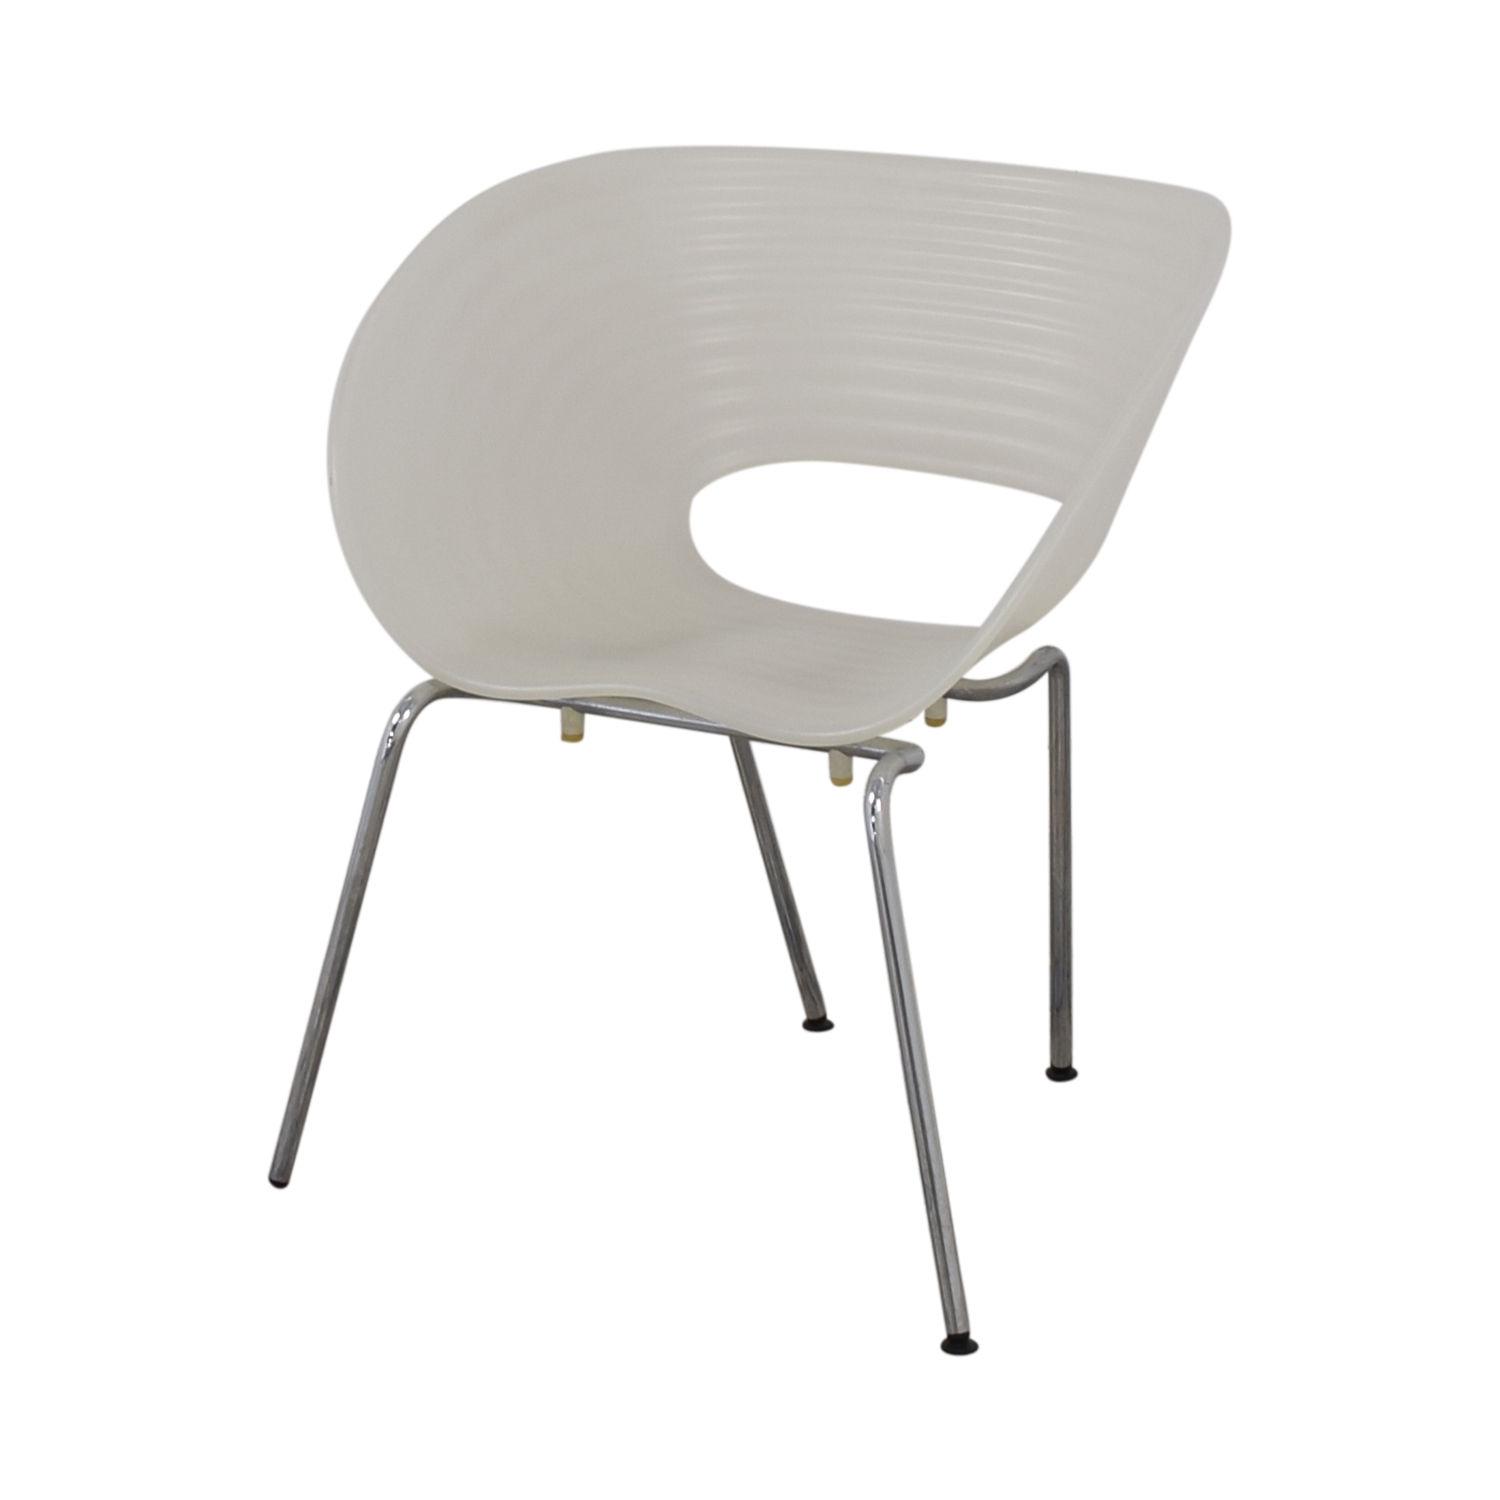 Vitra Vitra Ron Arad T. Vac Chair nyc